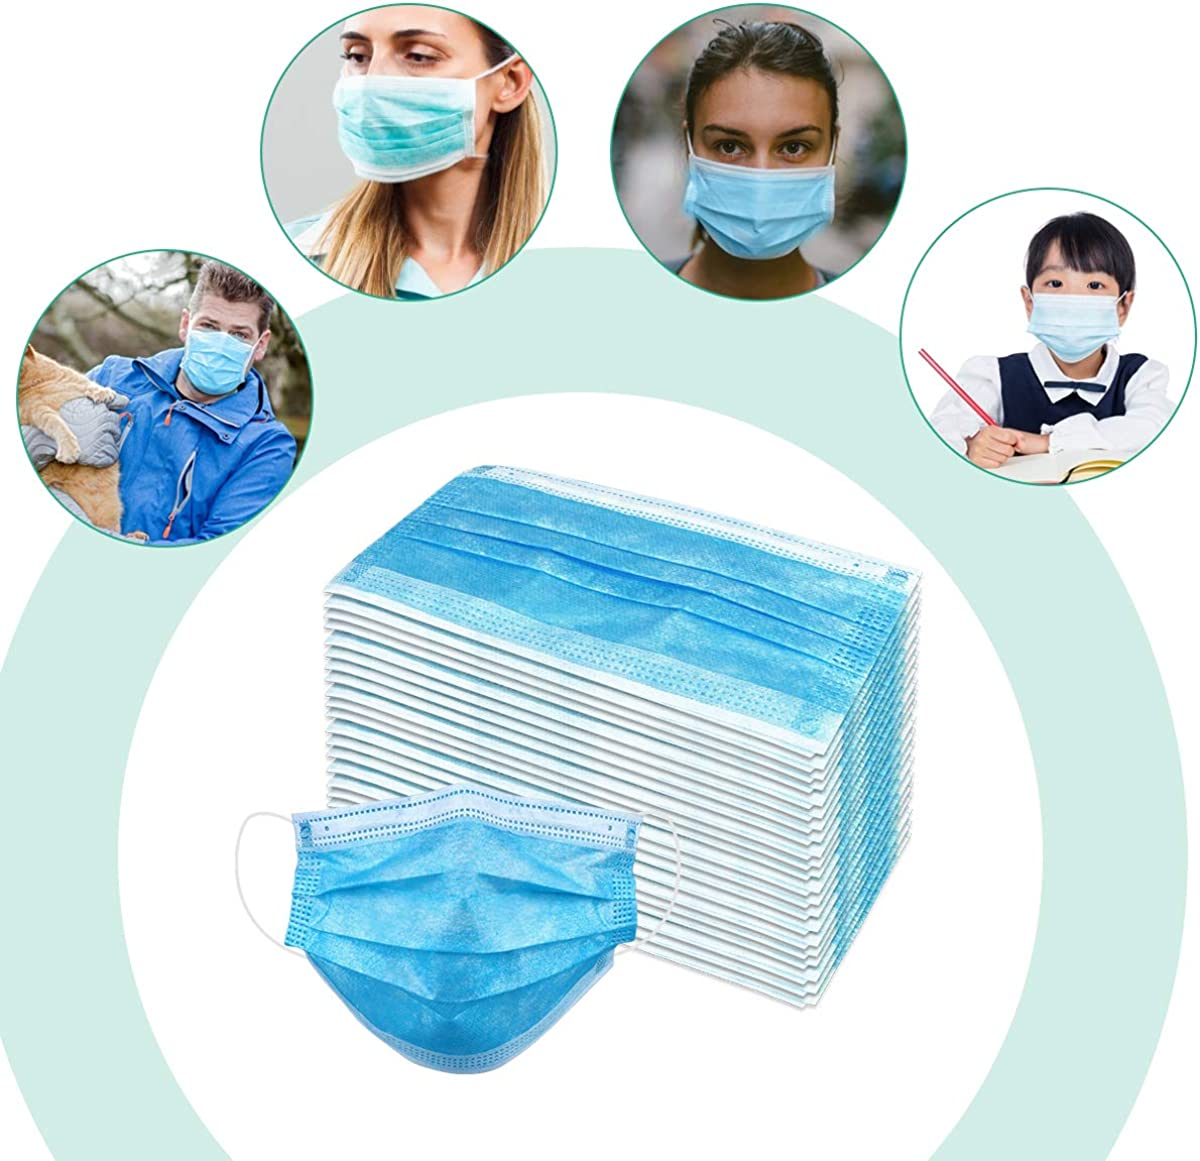 Wecolor Pcs Disposable 3 Ply Earloop Face Masks, Suitable for Home, School, Office and Outdoors (Blue)